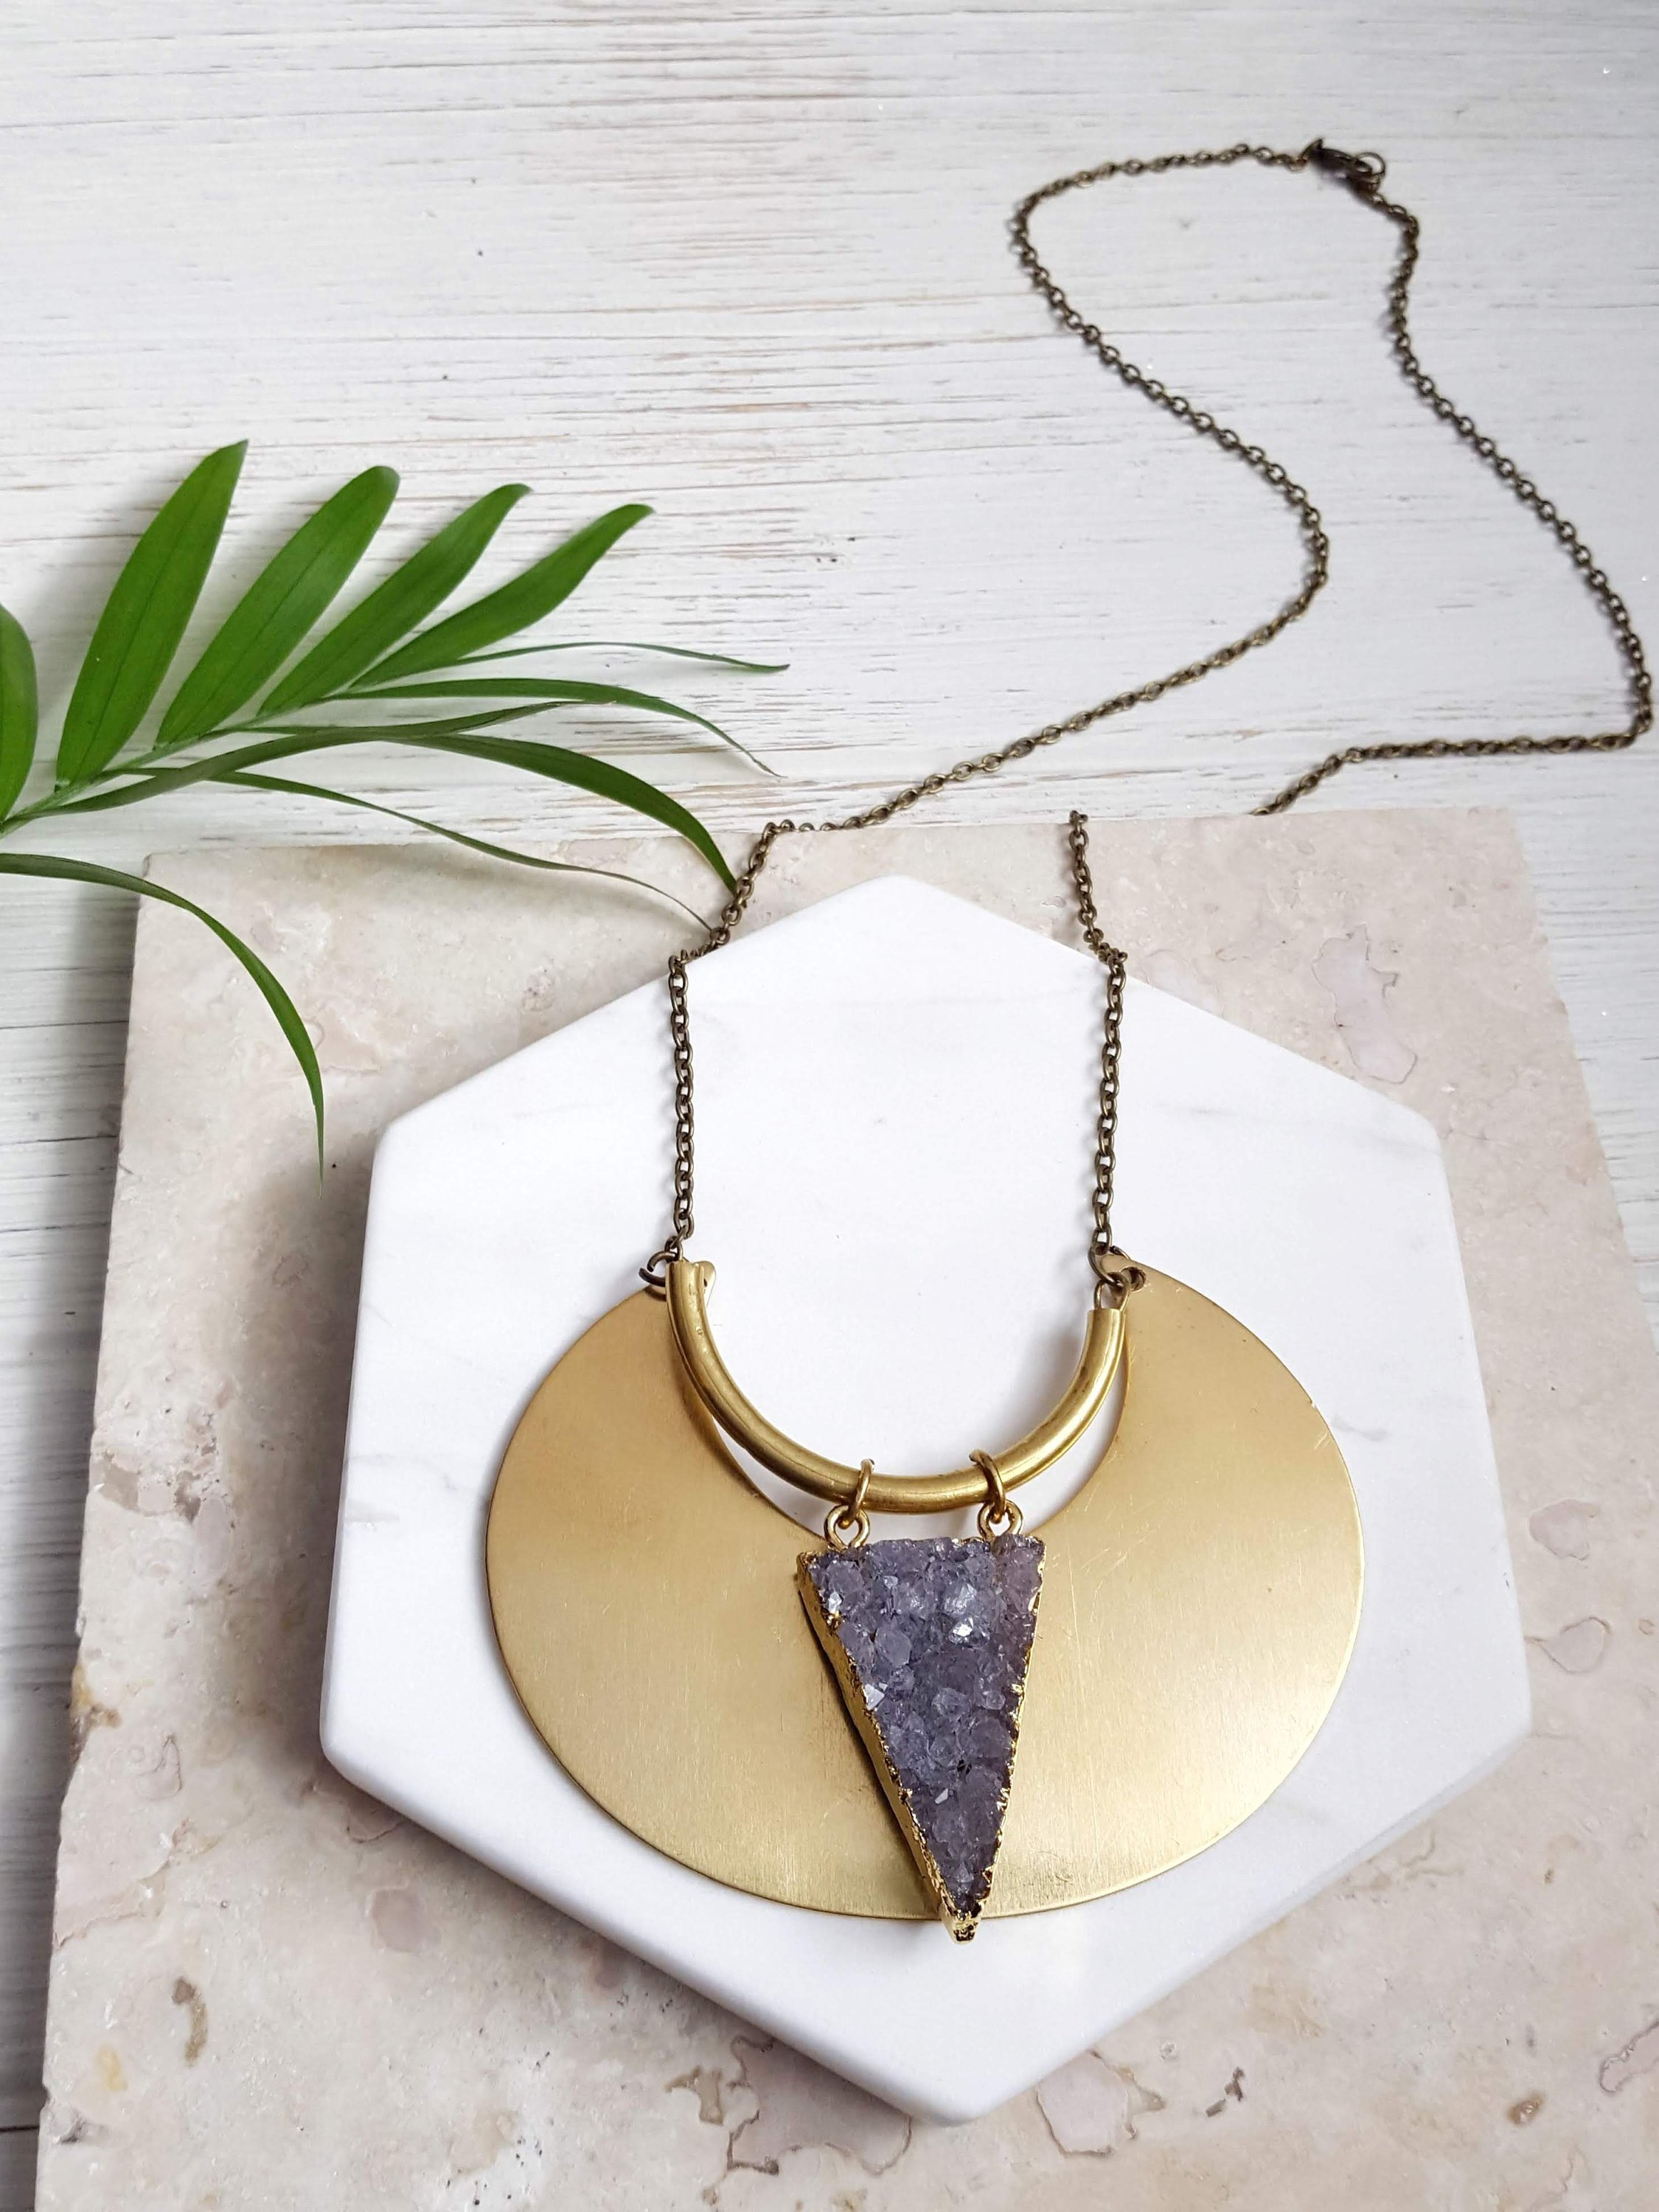 Large Brass Moon Necklace Crescent Necklace Crescent Pendant Moon Statement Necklace Raw Stone Necklace Raw Crystal Necklace Raw Amethyst.jpg